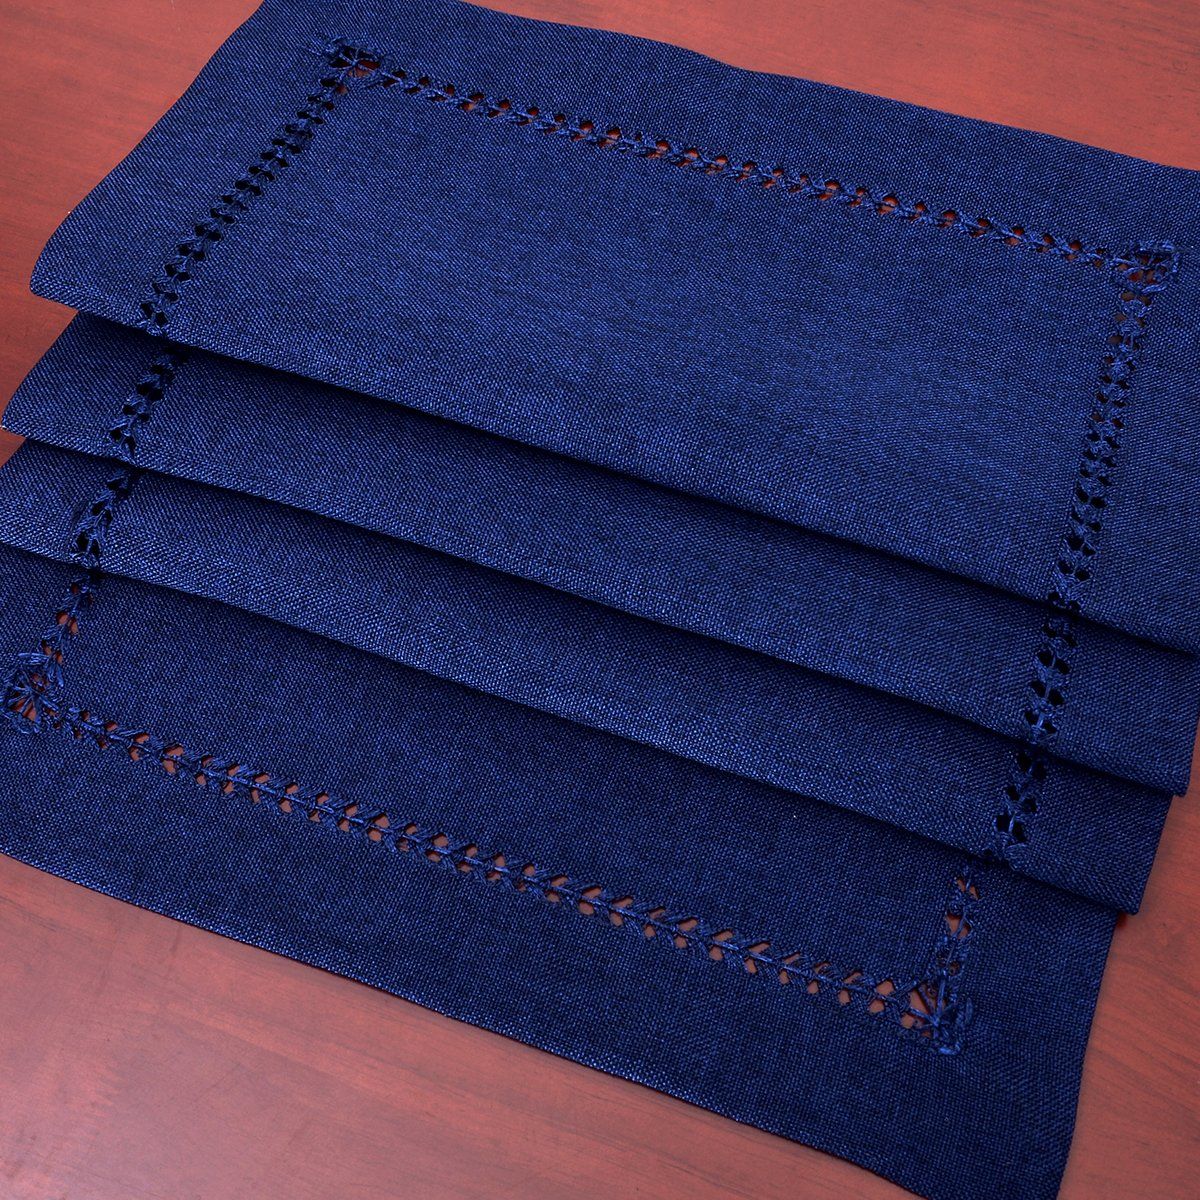 GRELUCGO Handmade Hemstitch Navy Blue Rectangular Table Runner Or Dresser Scarf (14 x 72 Inch) by GRELUCGO (Image #3)